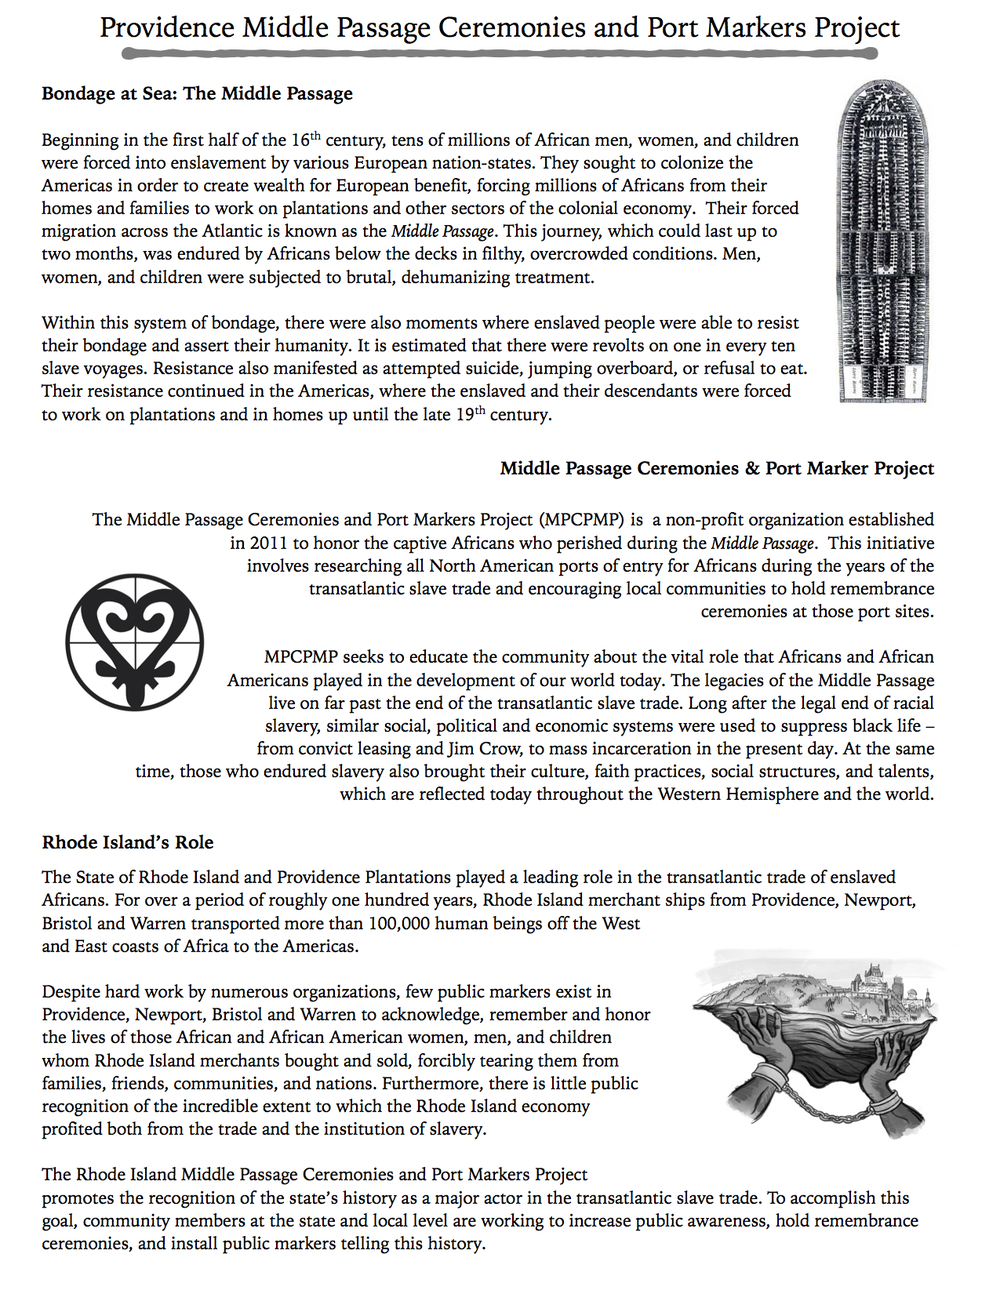 resources rhode island middle passage ceremonies and port informational brochure from the providence community discussion 27